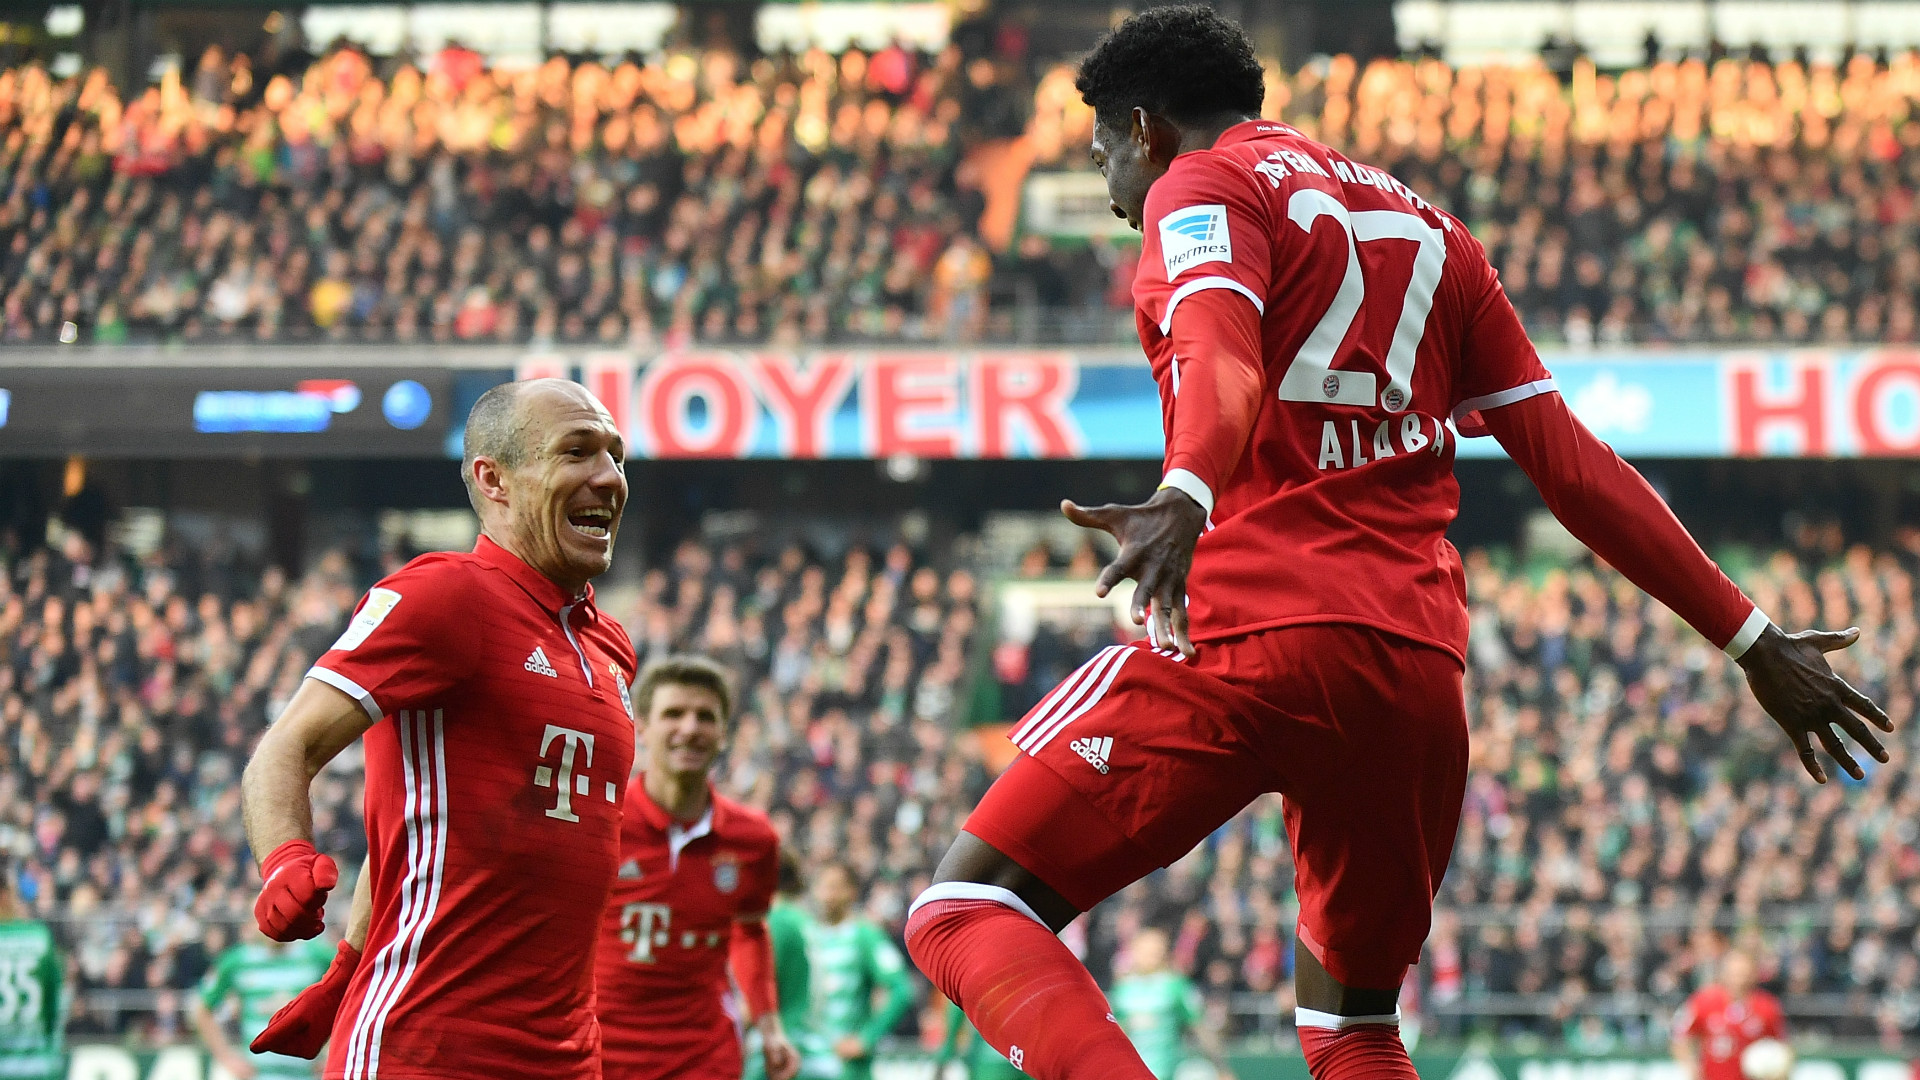 werder bremen 1 2 bayern munich robben alaba on target as ancelotti 39 s men extend run goal. Black Bedroom Furniture Sets. Home Design Ideas